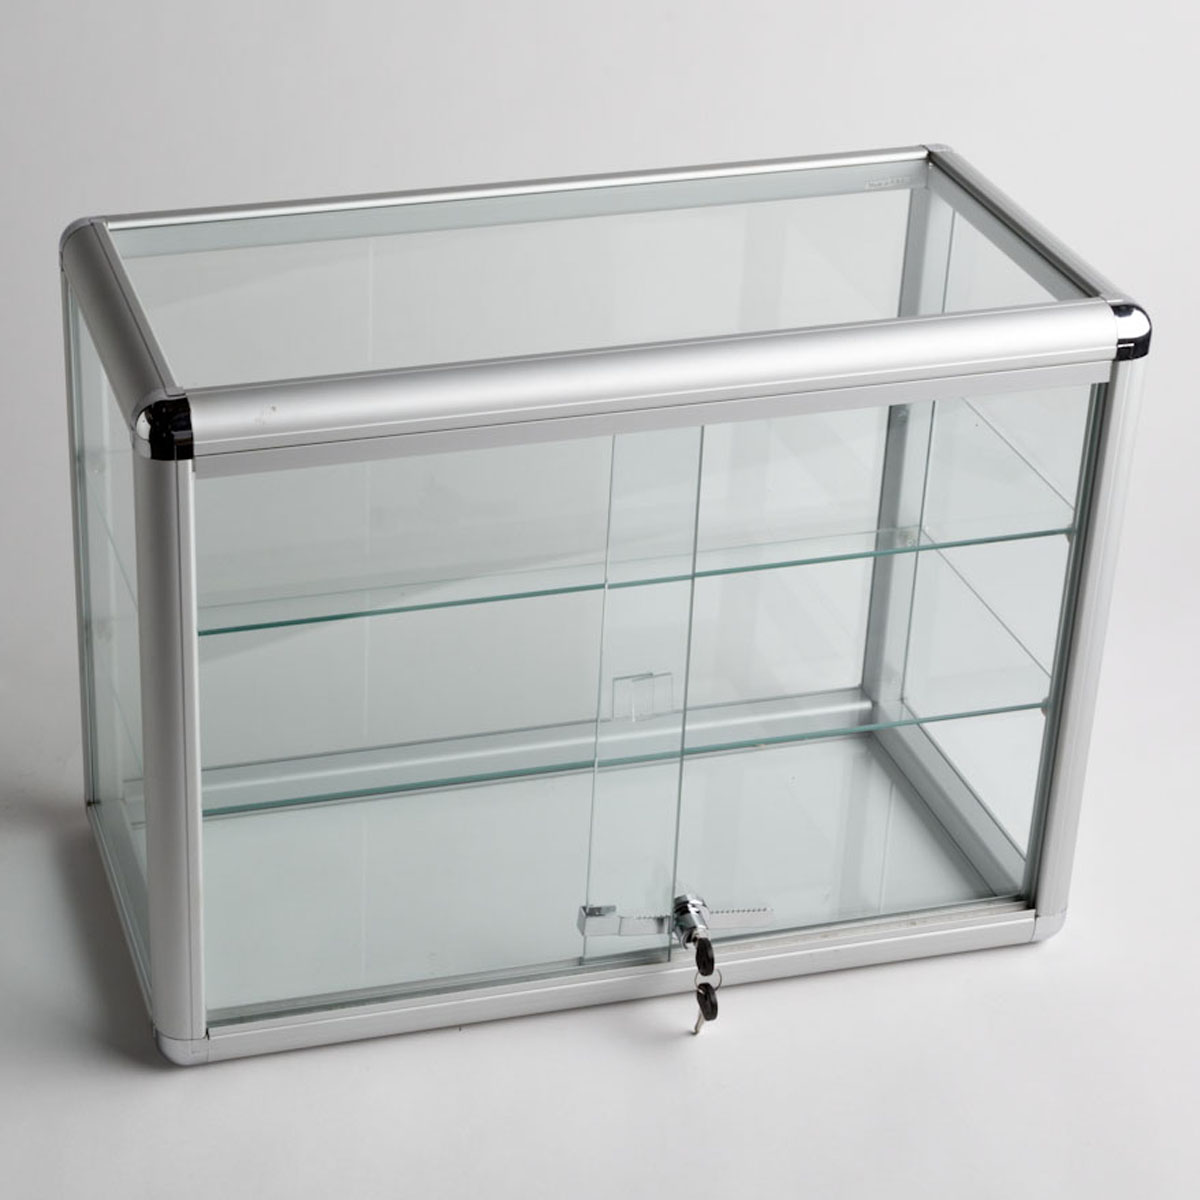 Glass Display Case with 2 Shelves | A&B Store Fixtures